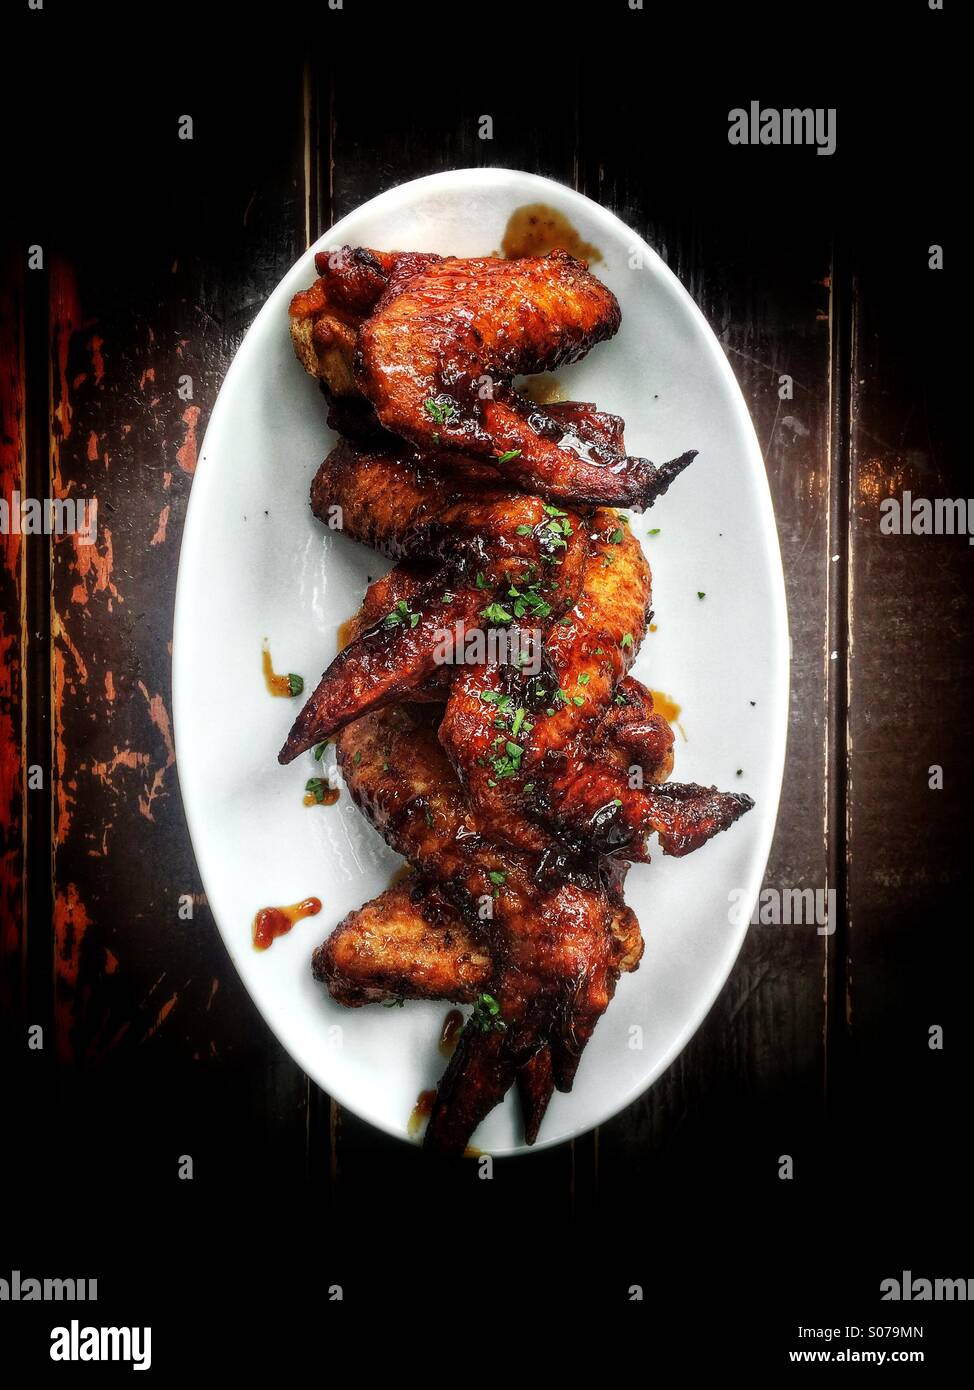 BBQ chicken wings - Stock Image